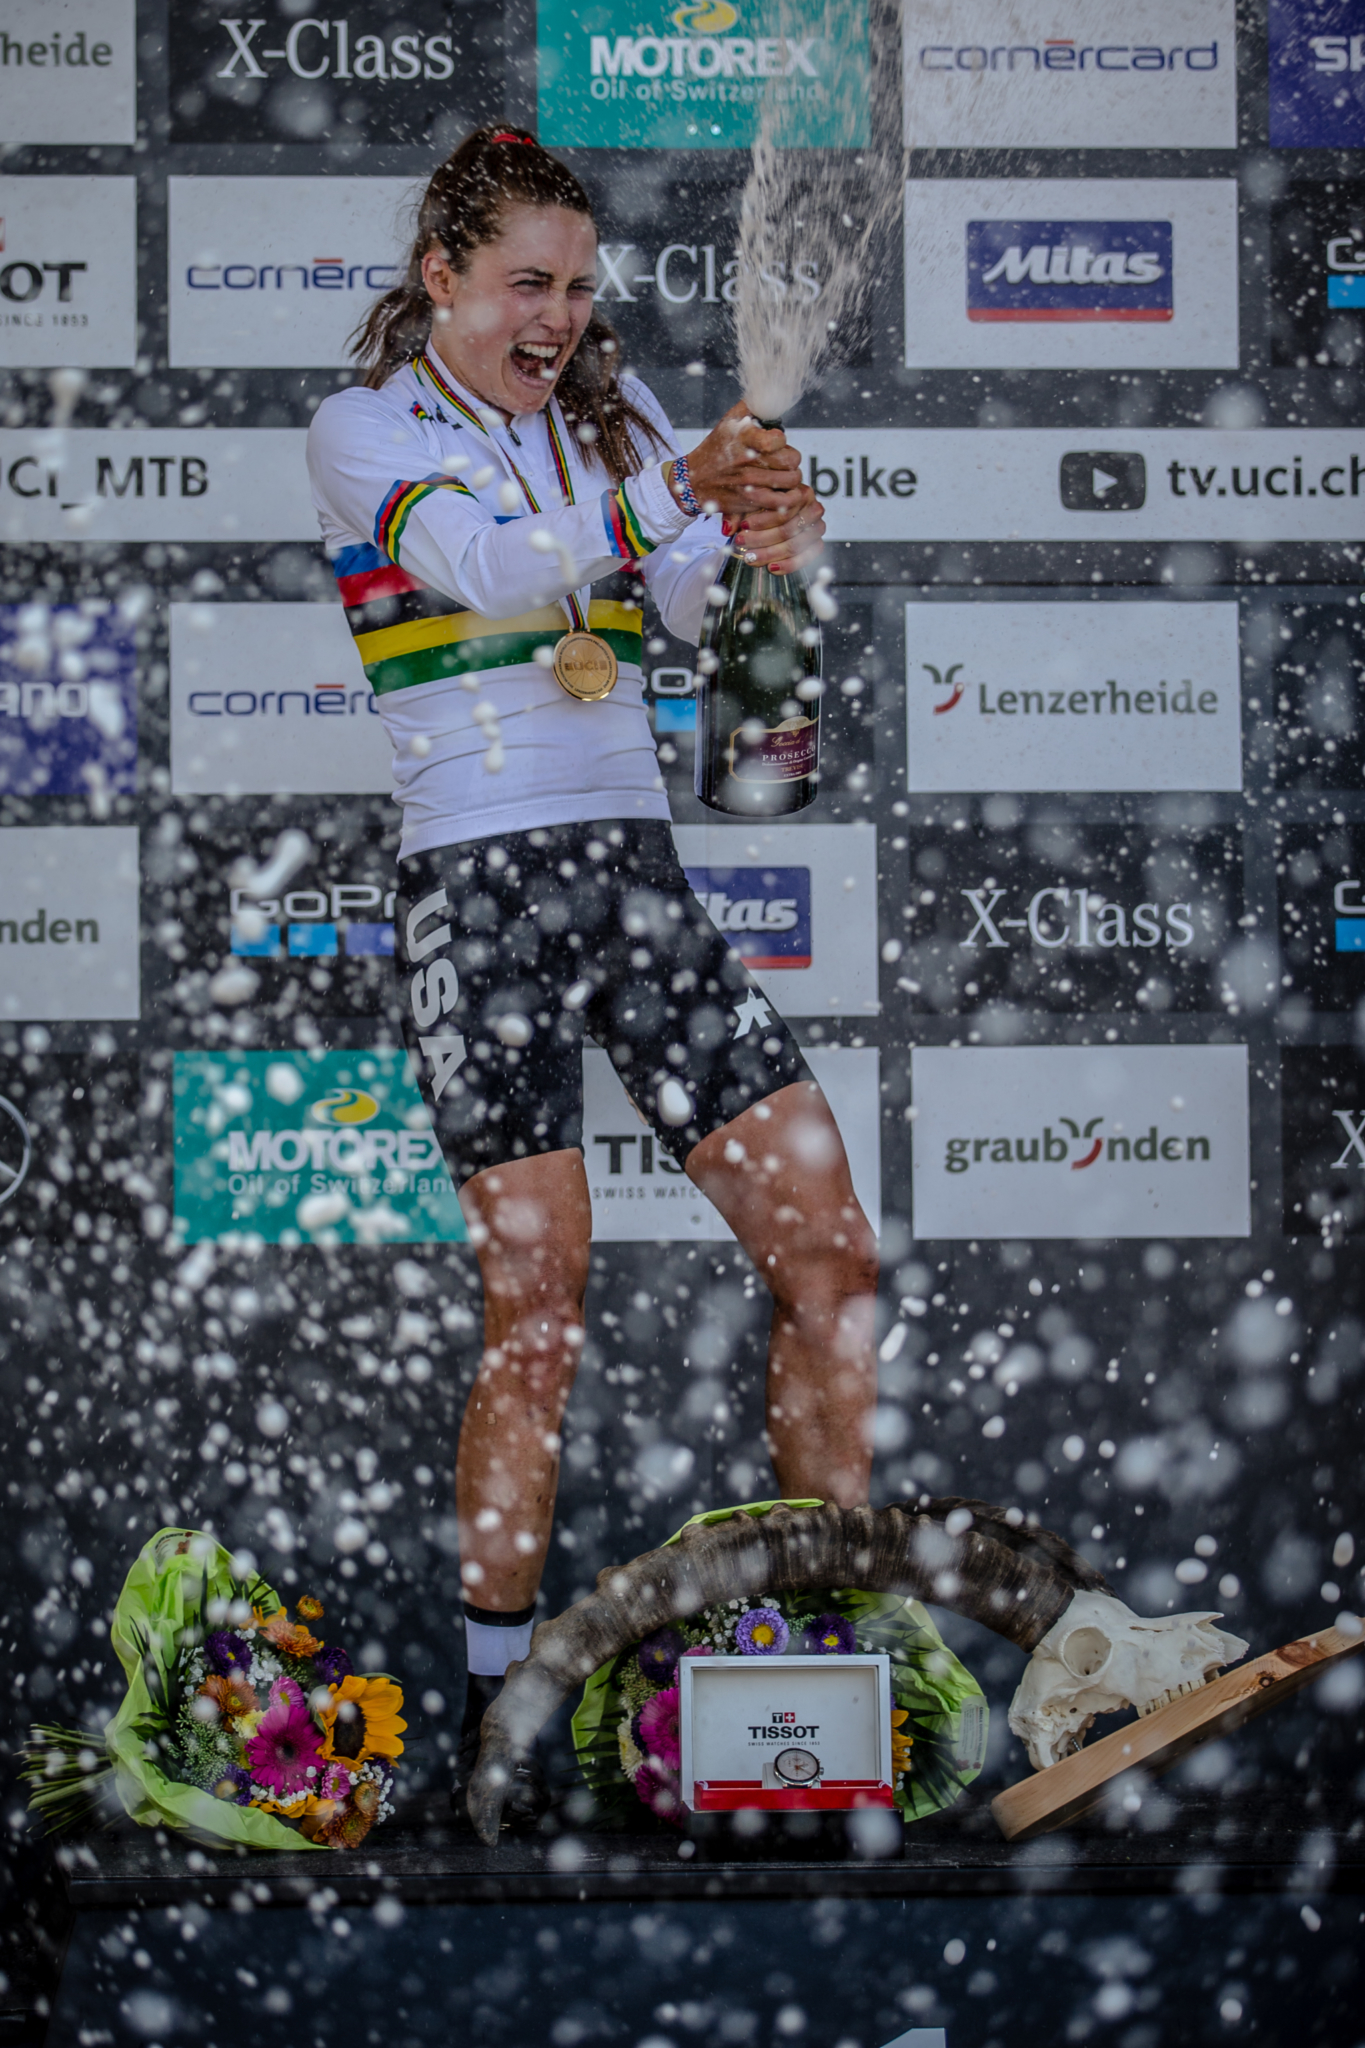 Kate Courtney (USA) celebrates her win of the Women Elite Cross Country event at the 2018 UCI MTB World Championships - Lenzerheide, Switzerland